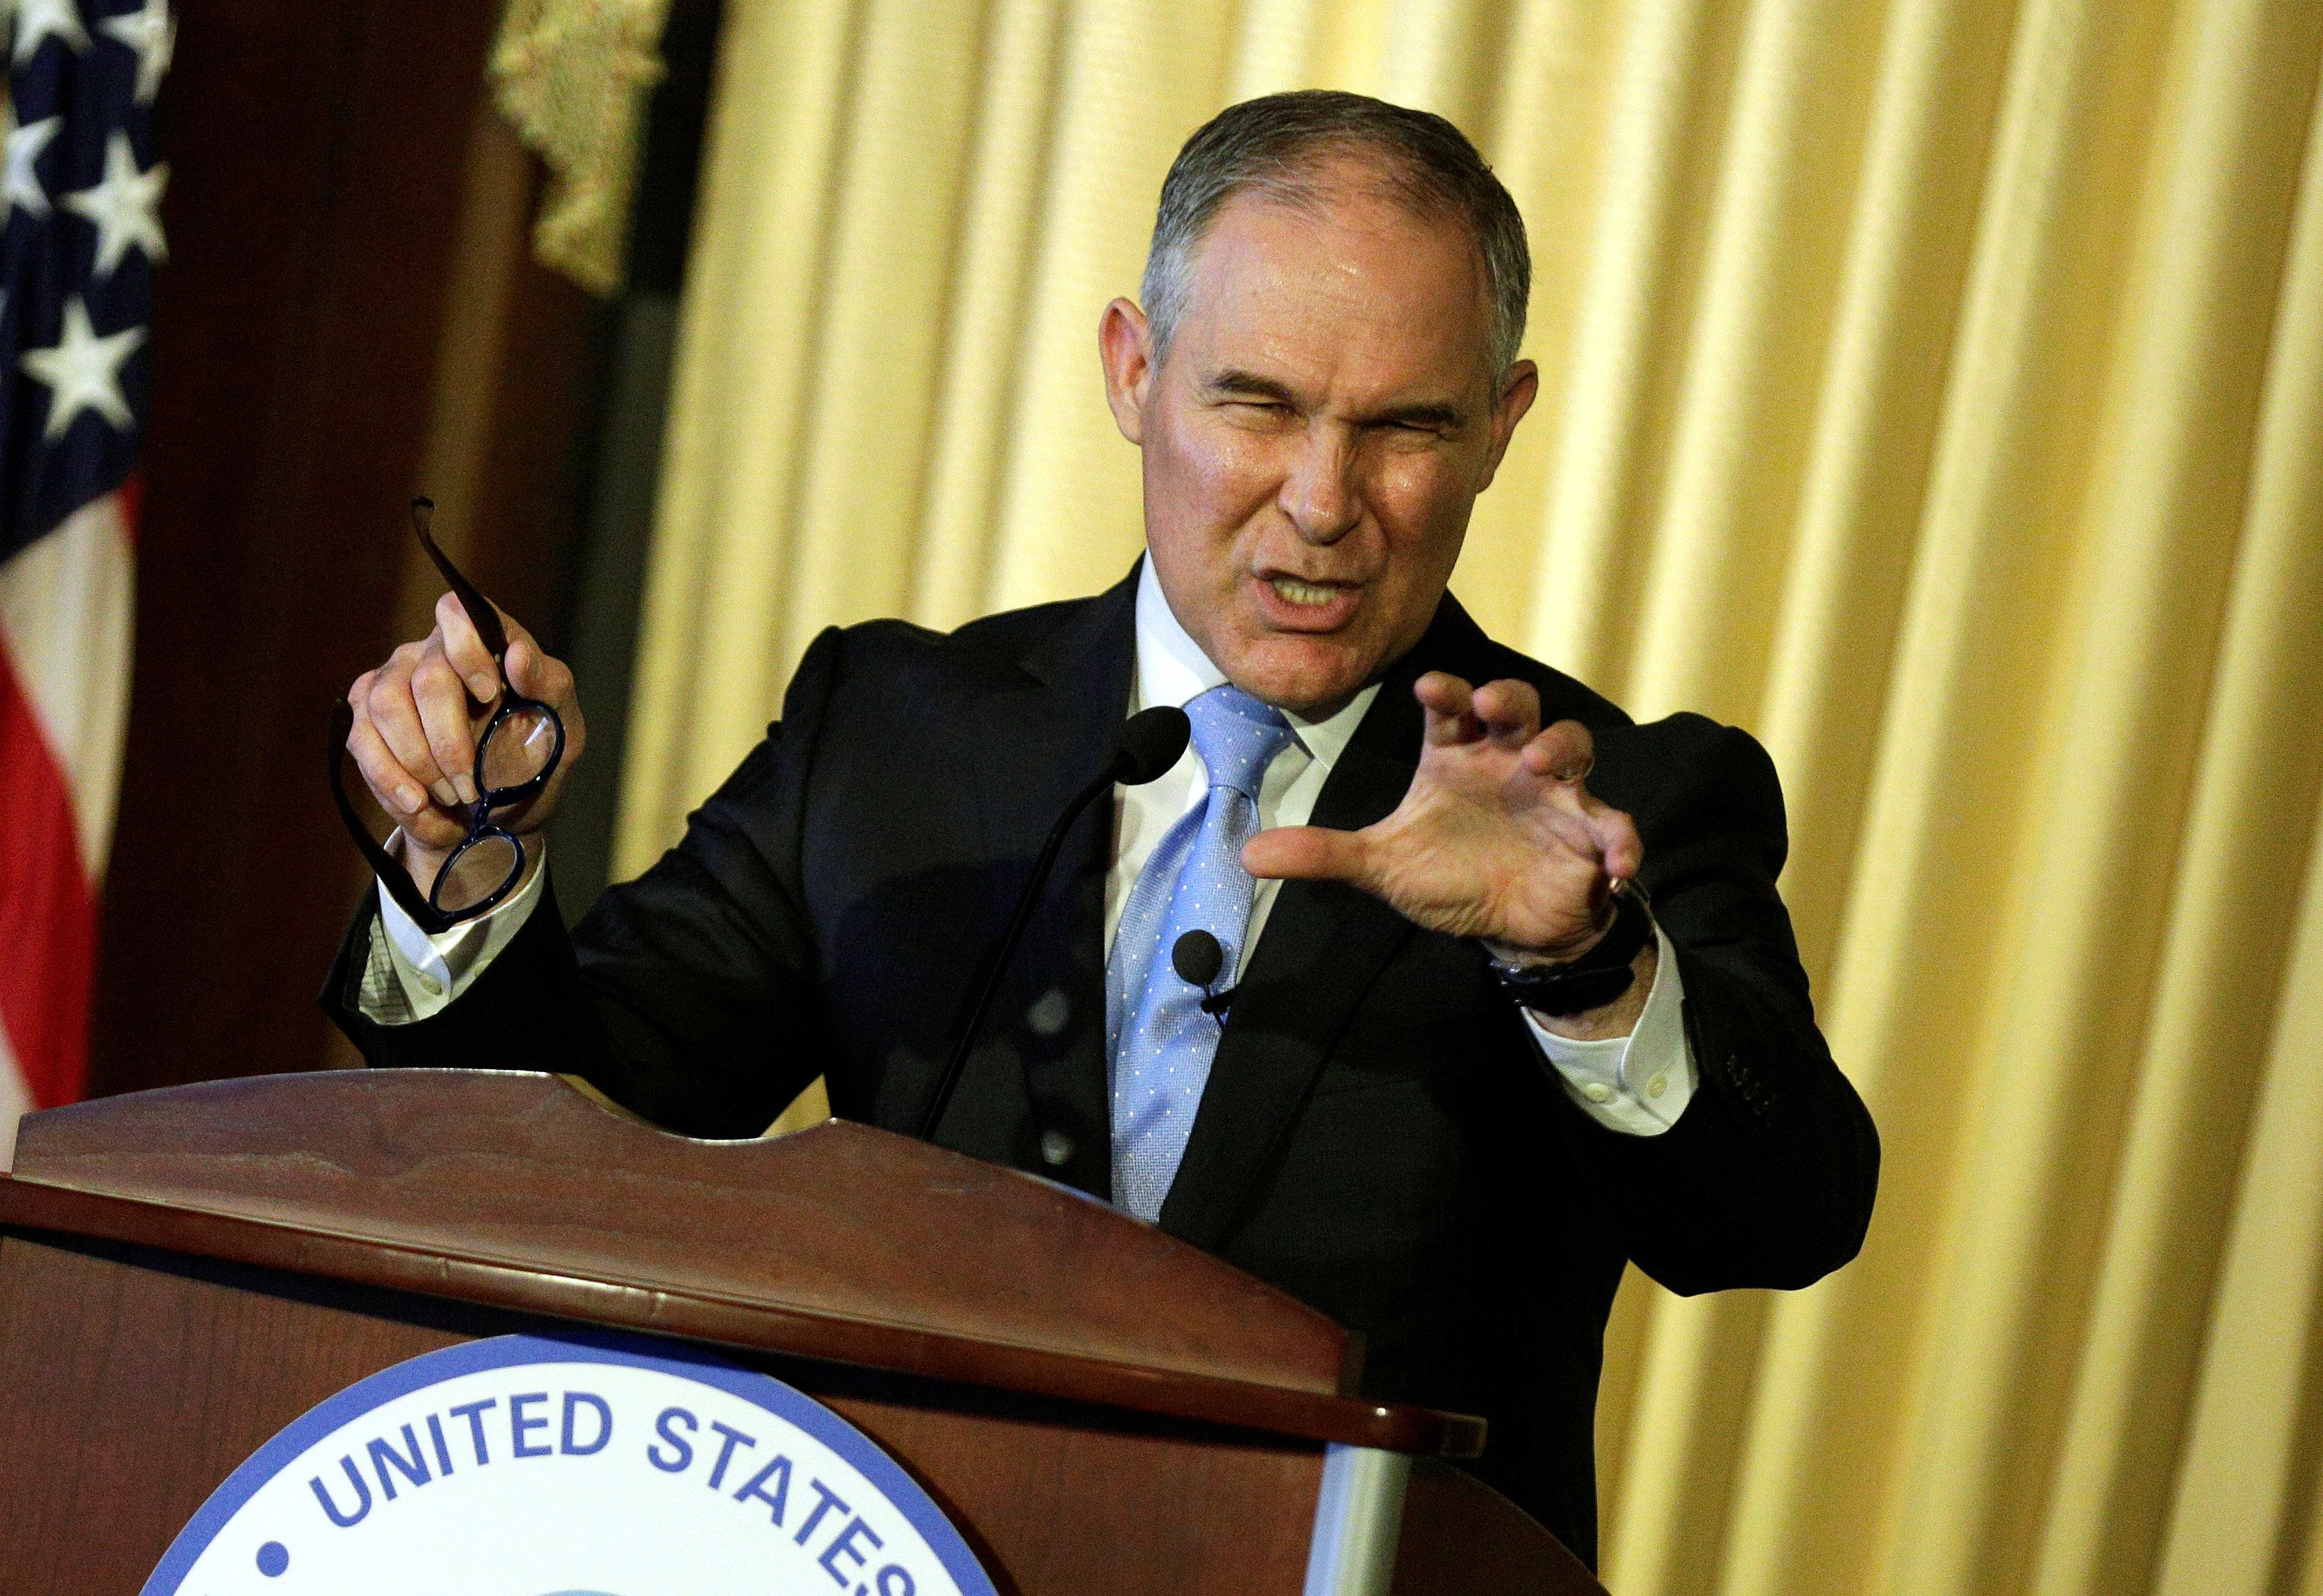 The Environmental Protection Agency, led by Scott Pruitt, has removed several members from an internal review board.